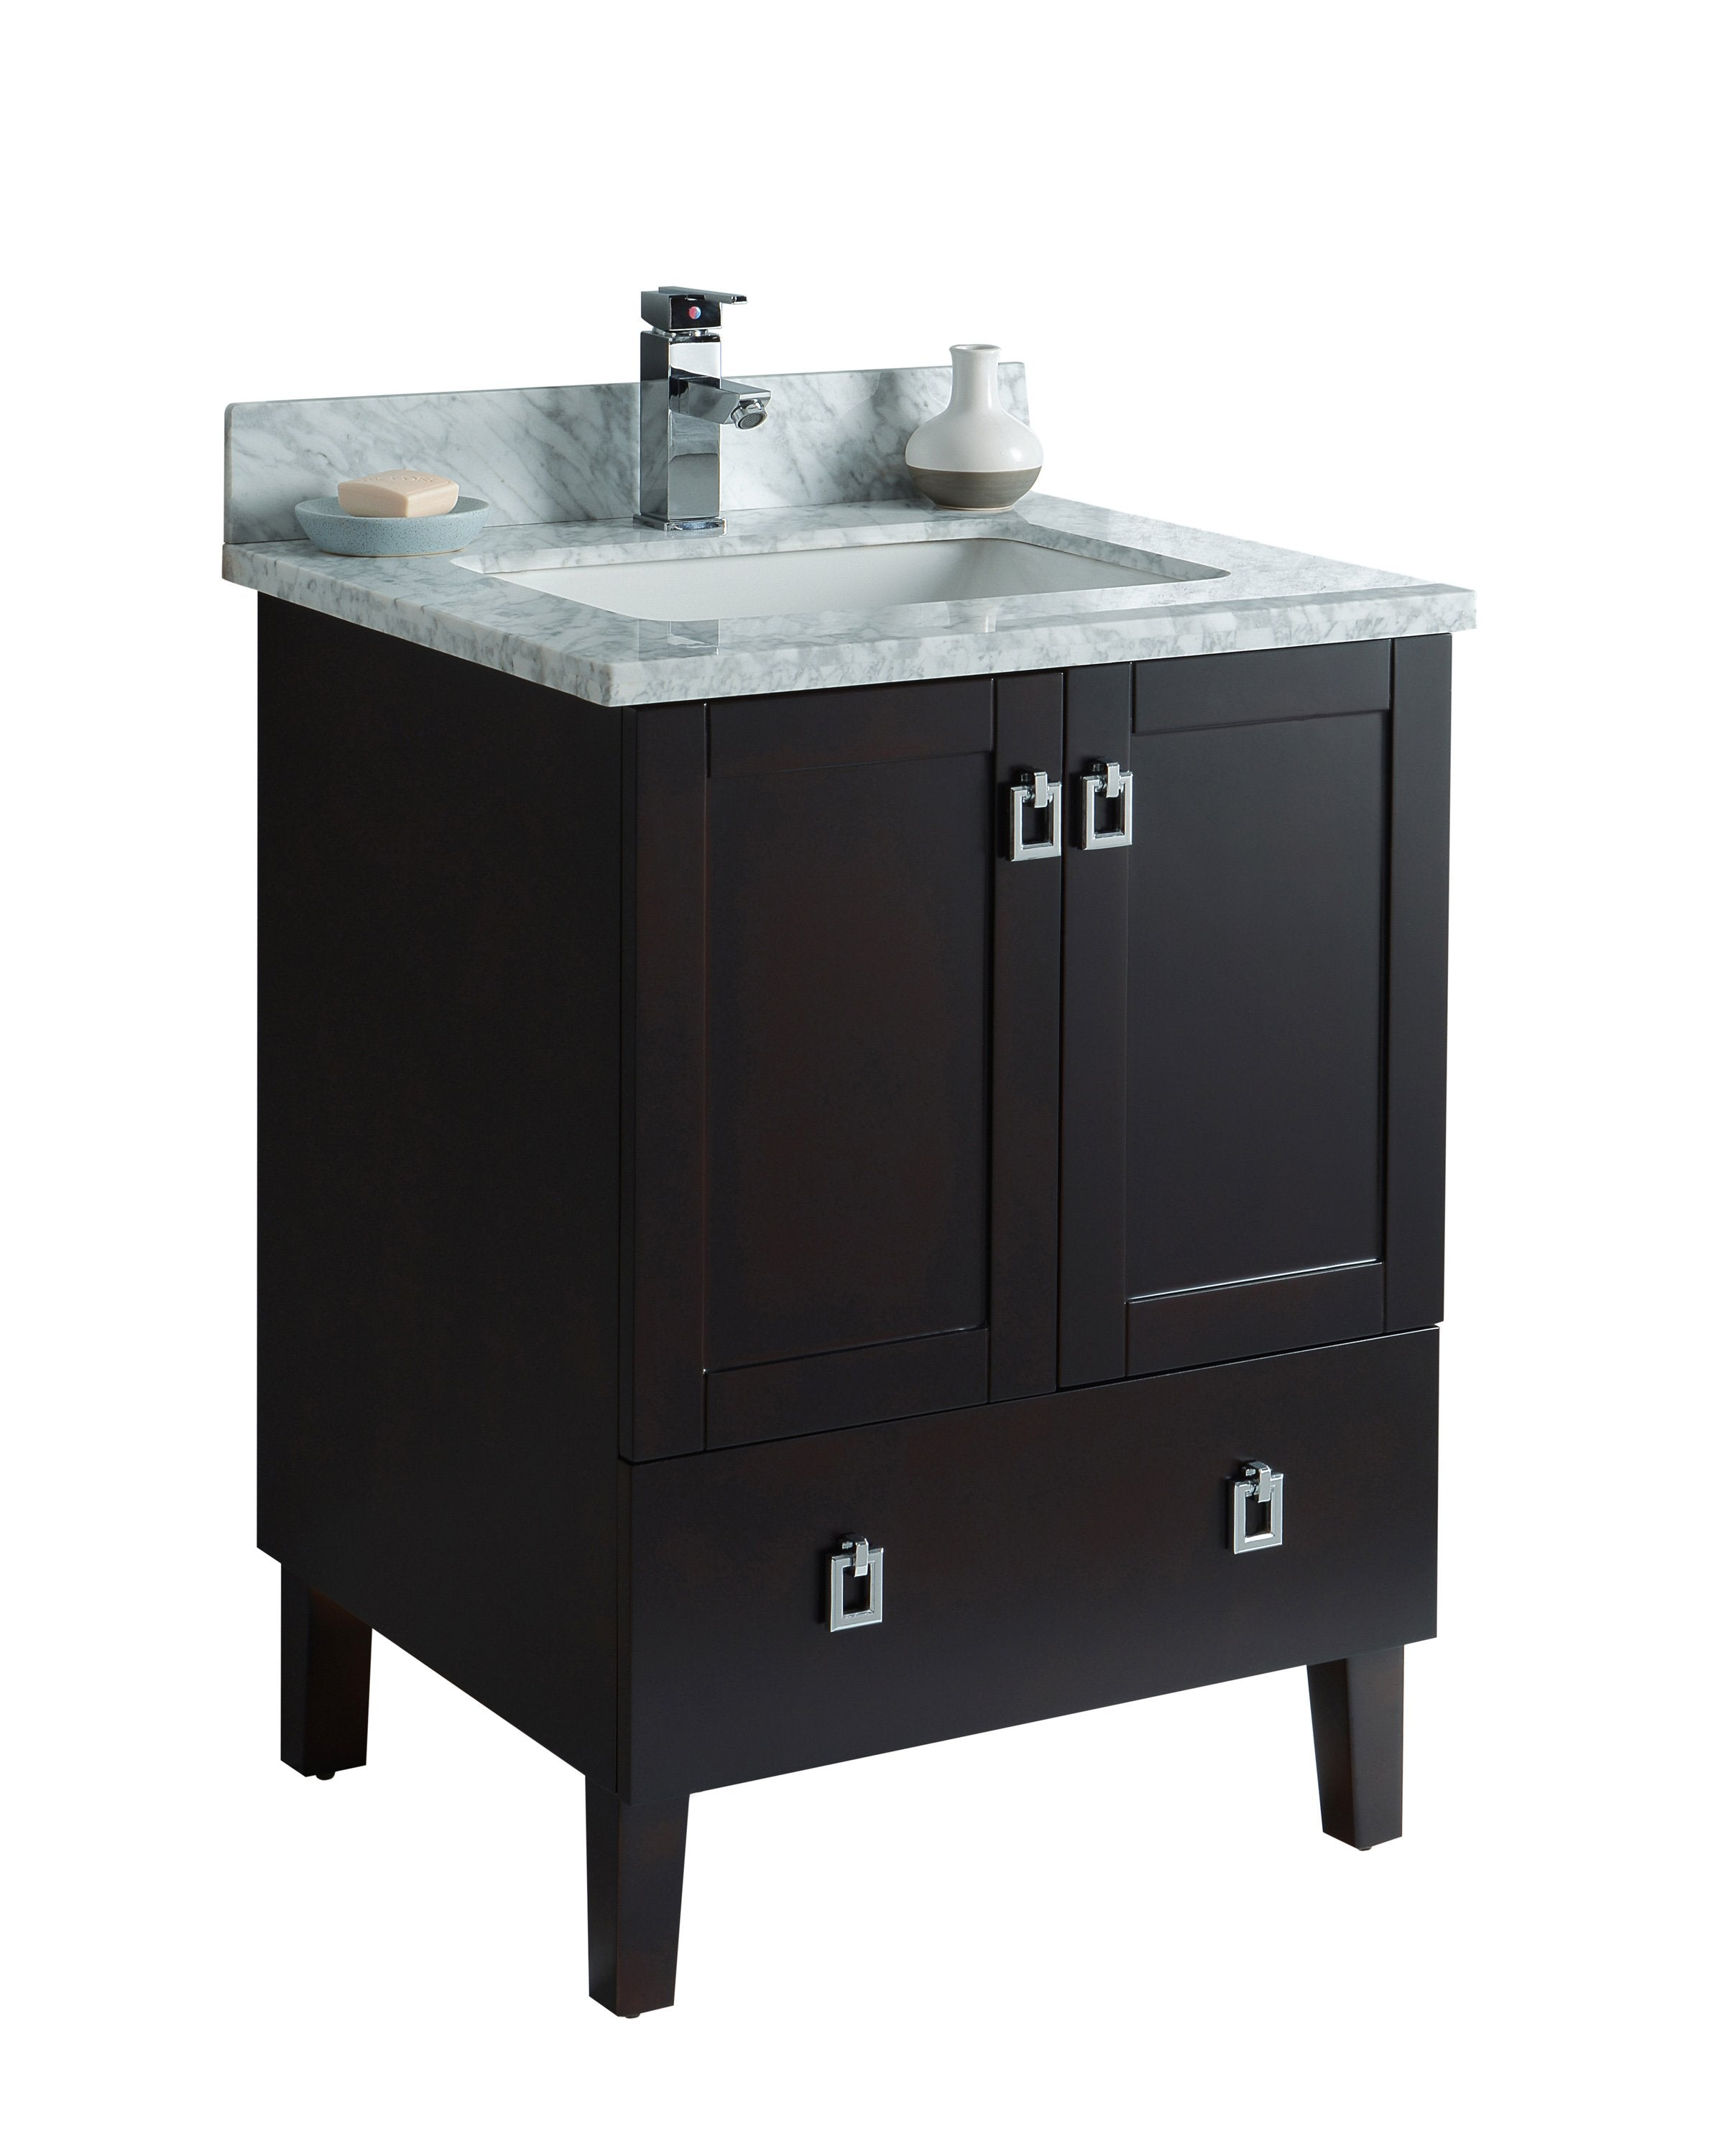 ... 24 Inch Bathroom Cabinet With Marble Countertop ...